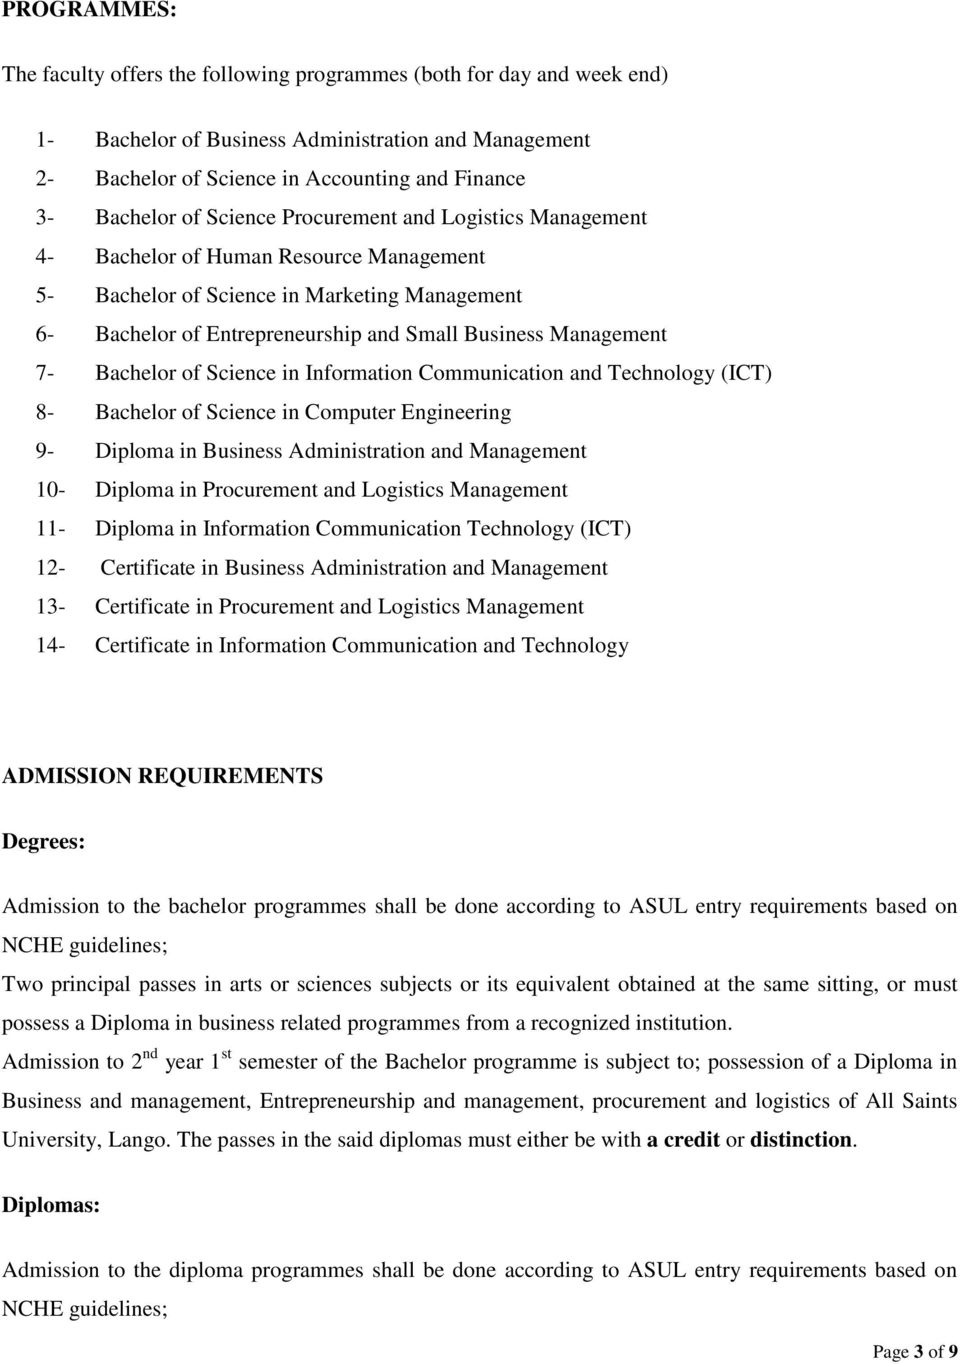 7- Bachelor of Science in Information Communication and Technology (ICT) 8- Bachelor of Science in Computer Engineering 9- Diploma in Business Administration and Management 10- Diploma in Procurement